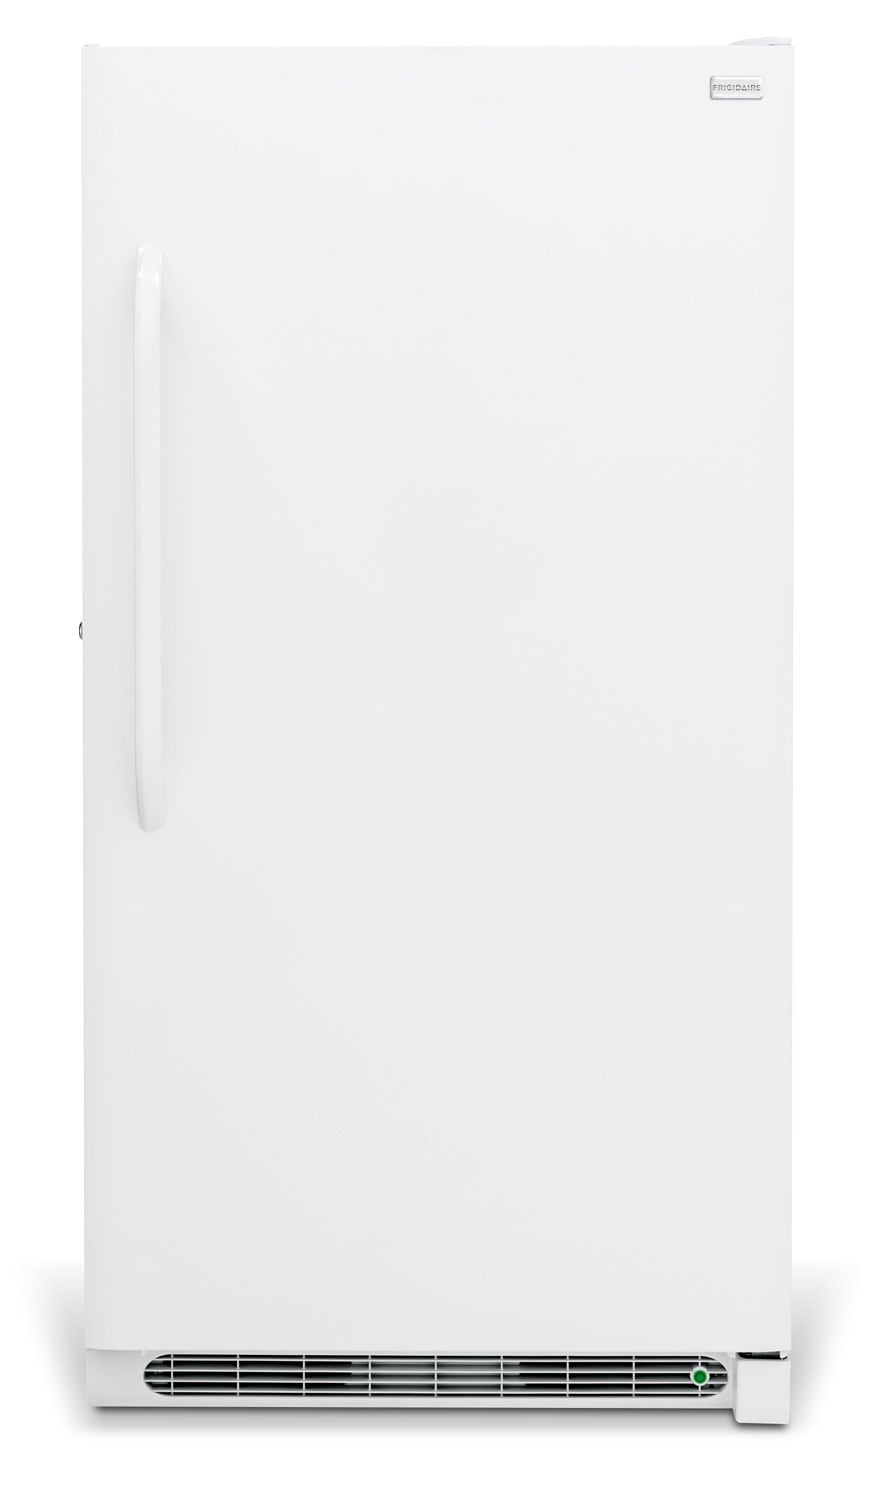 Frigidaire Upright Freezer (16.6 Cu. Ft.) FFFH17F2QW